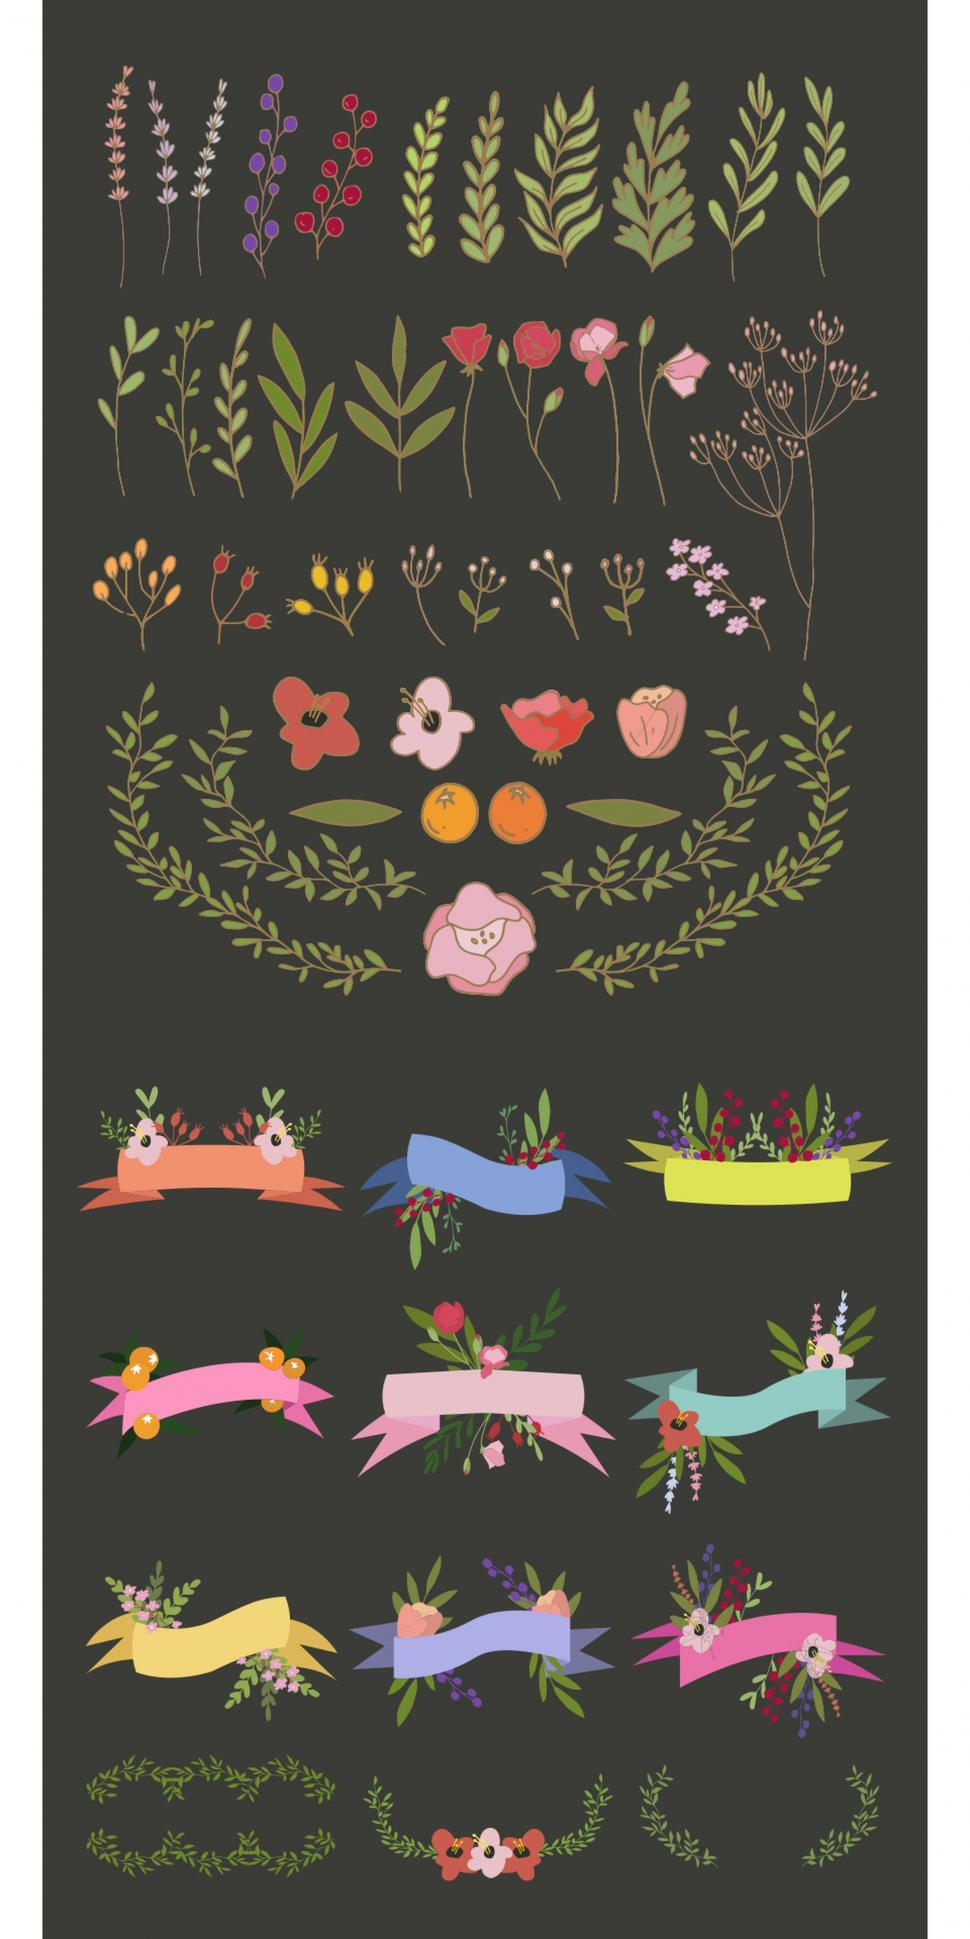 Download Free Stock HD Photo of A collection flower and ribbon banners vector icons Online